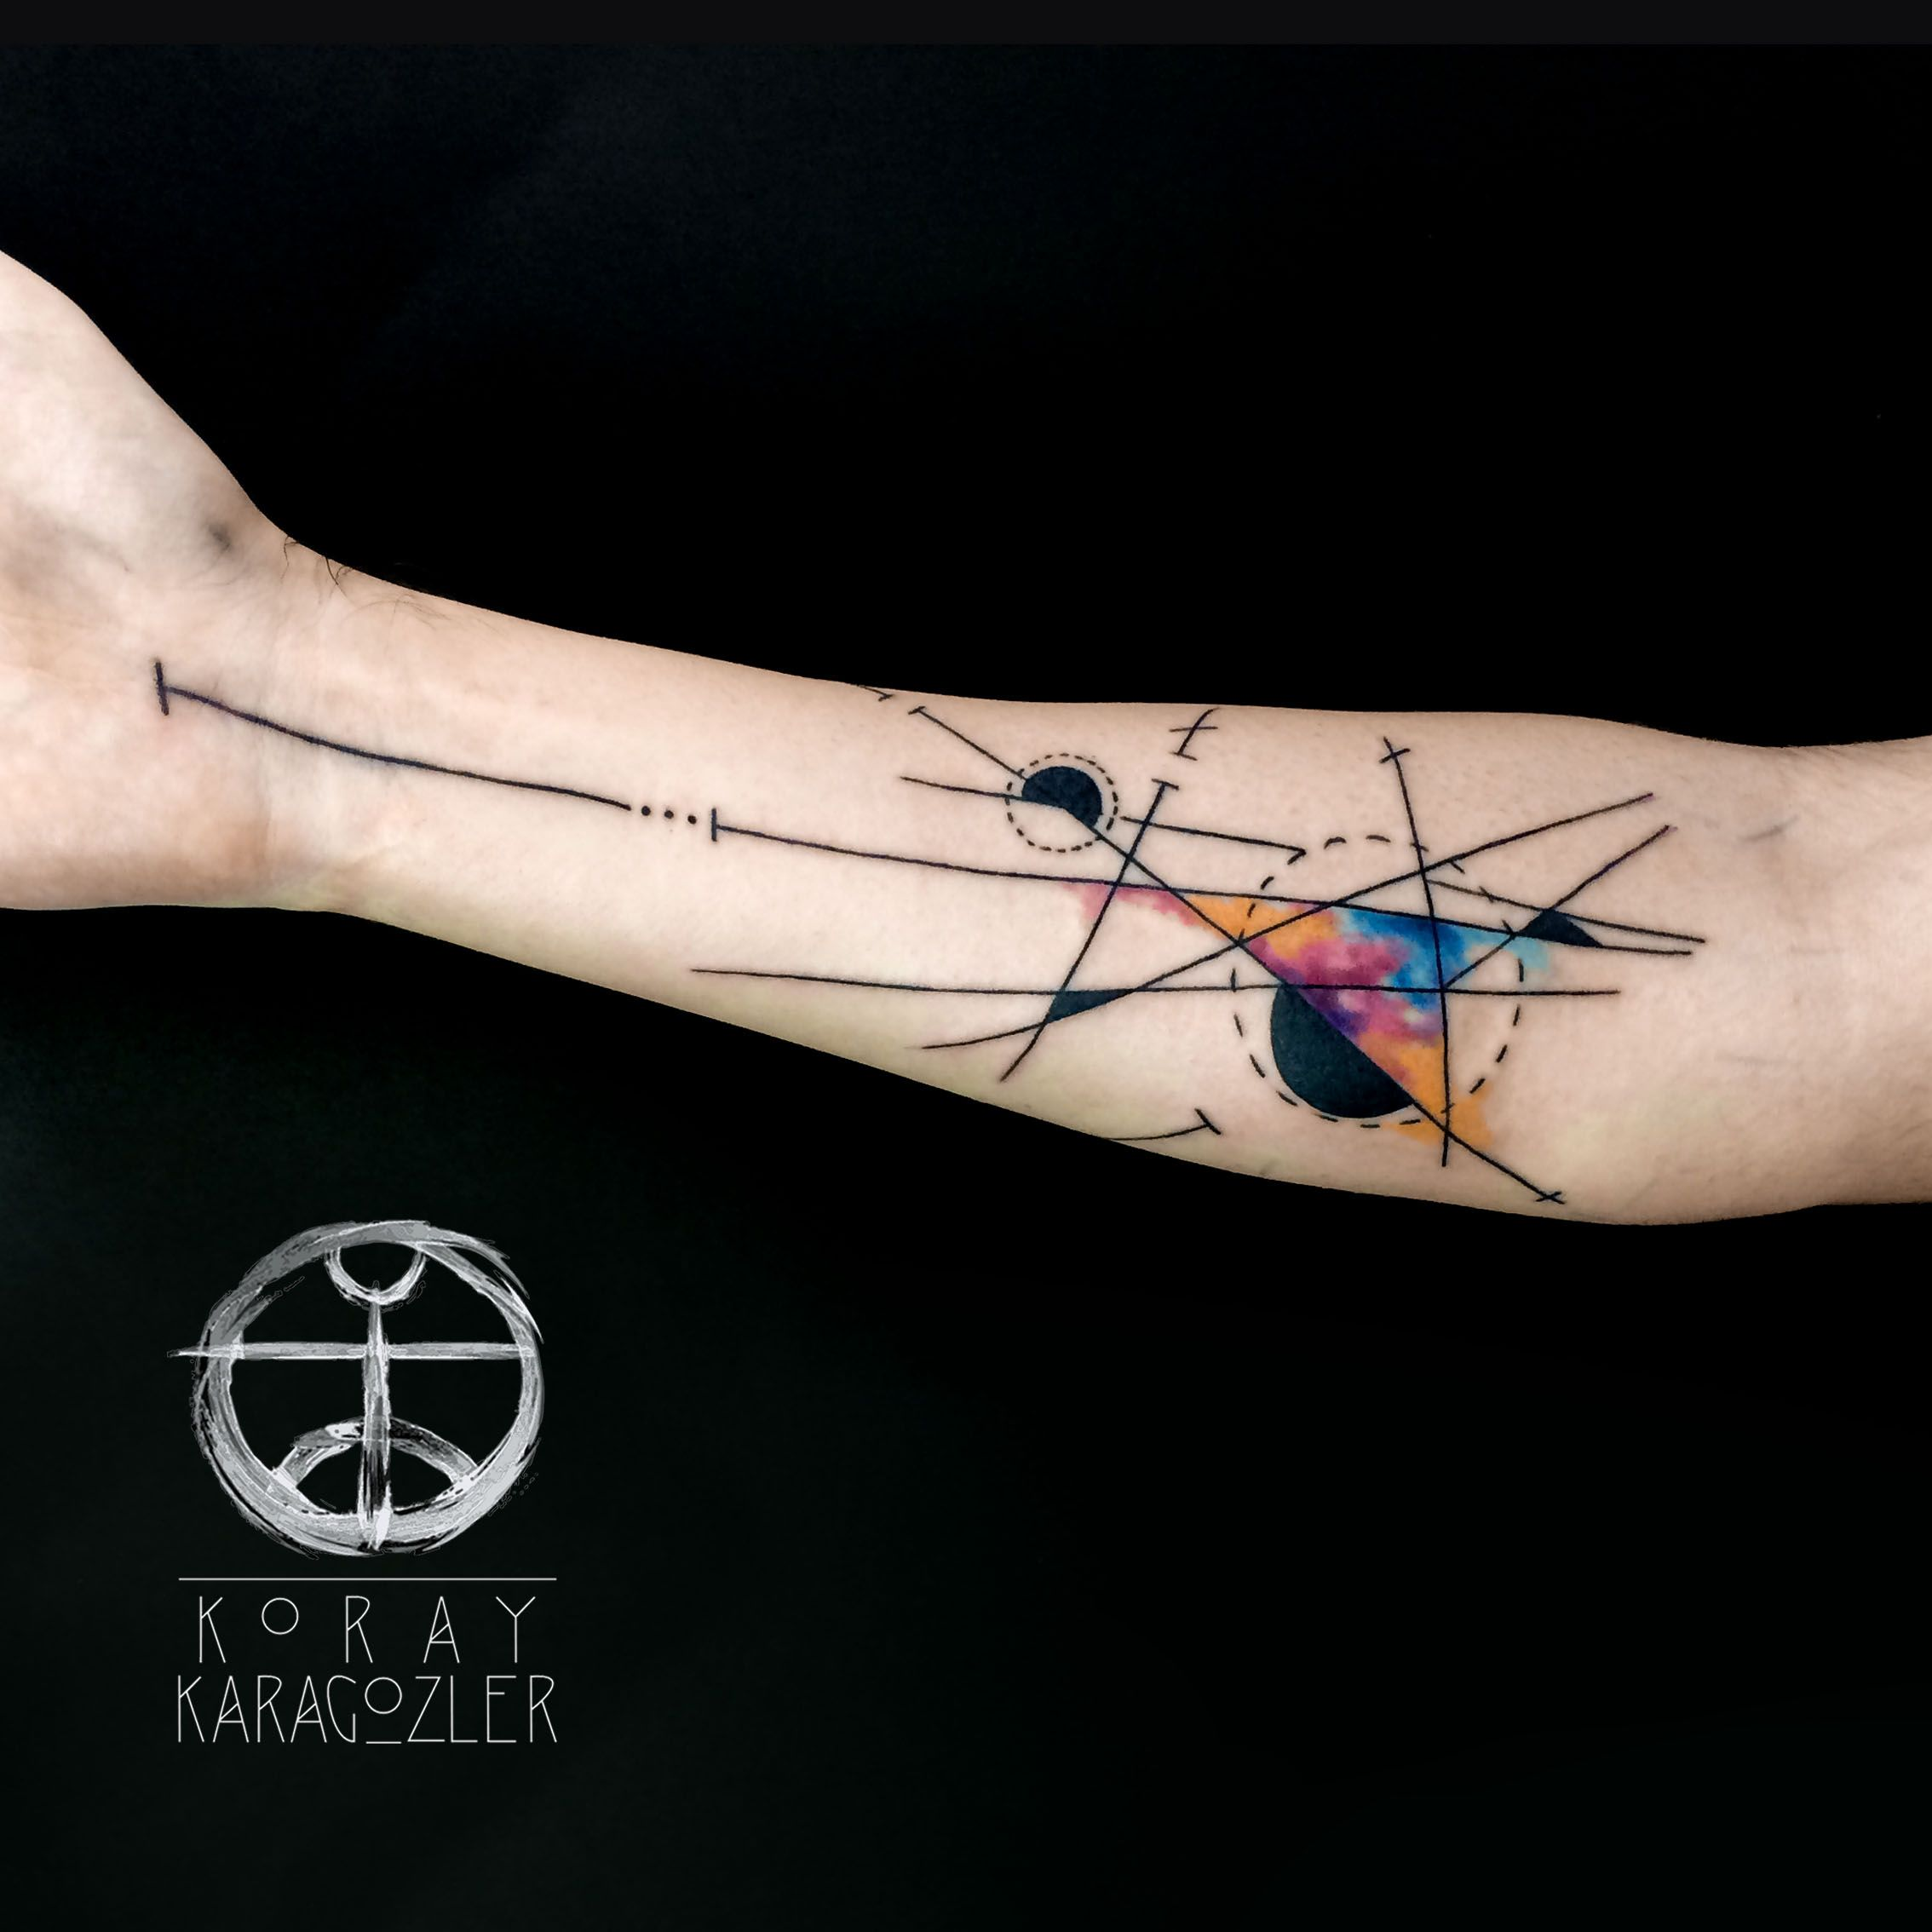 Abstract Watercolor Tattoos And Arm Tattoo: Geometric, Abstract, Watercolour